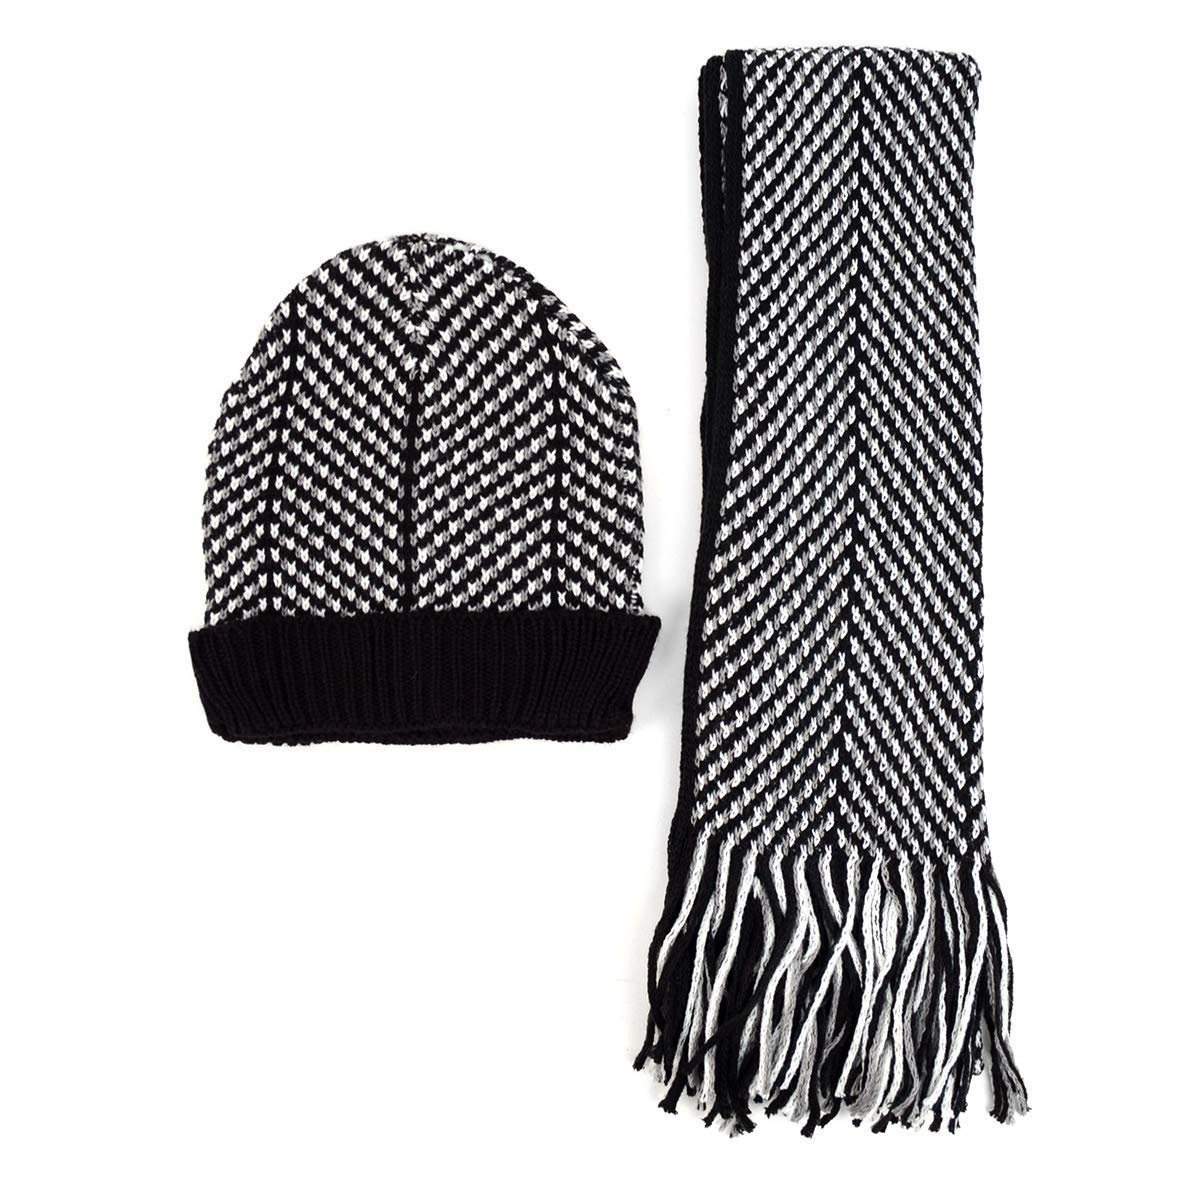 Men s Winter Knit Scarf and Beanie Hat Set Black and White Fashionable    Warm 6d52356f591a